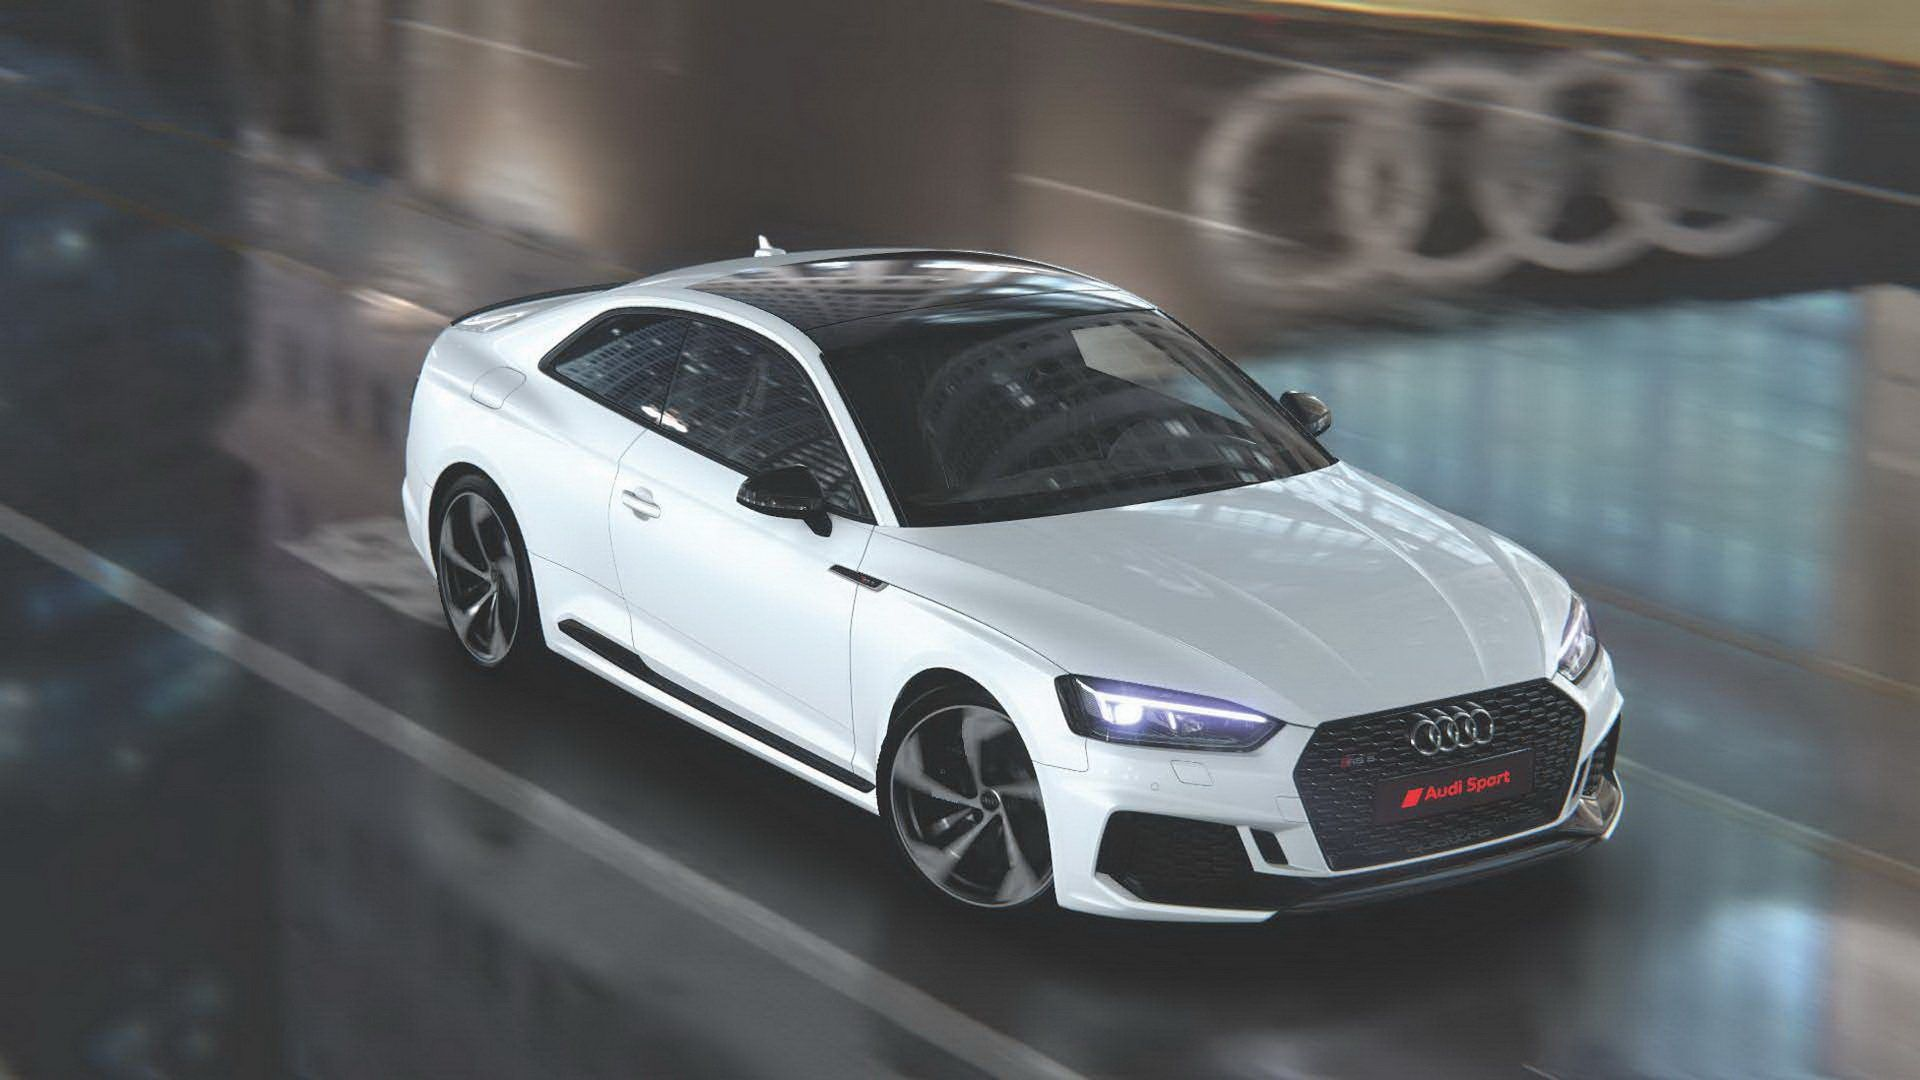 2021 Audi Rs5 Tdi Price and Review in 2020 Audi rs5